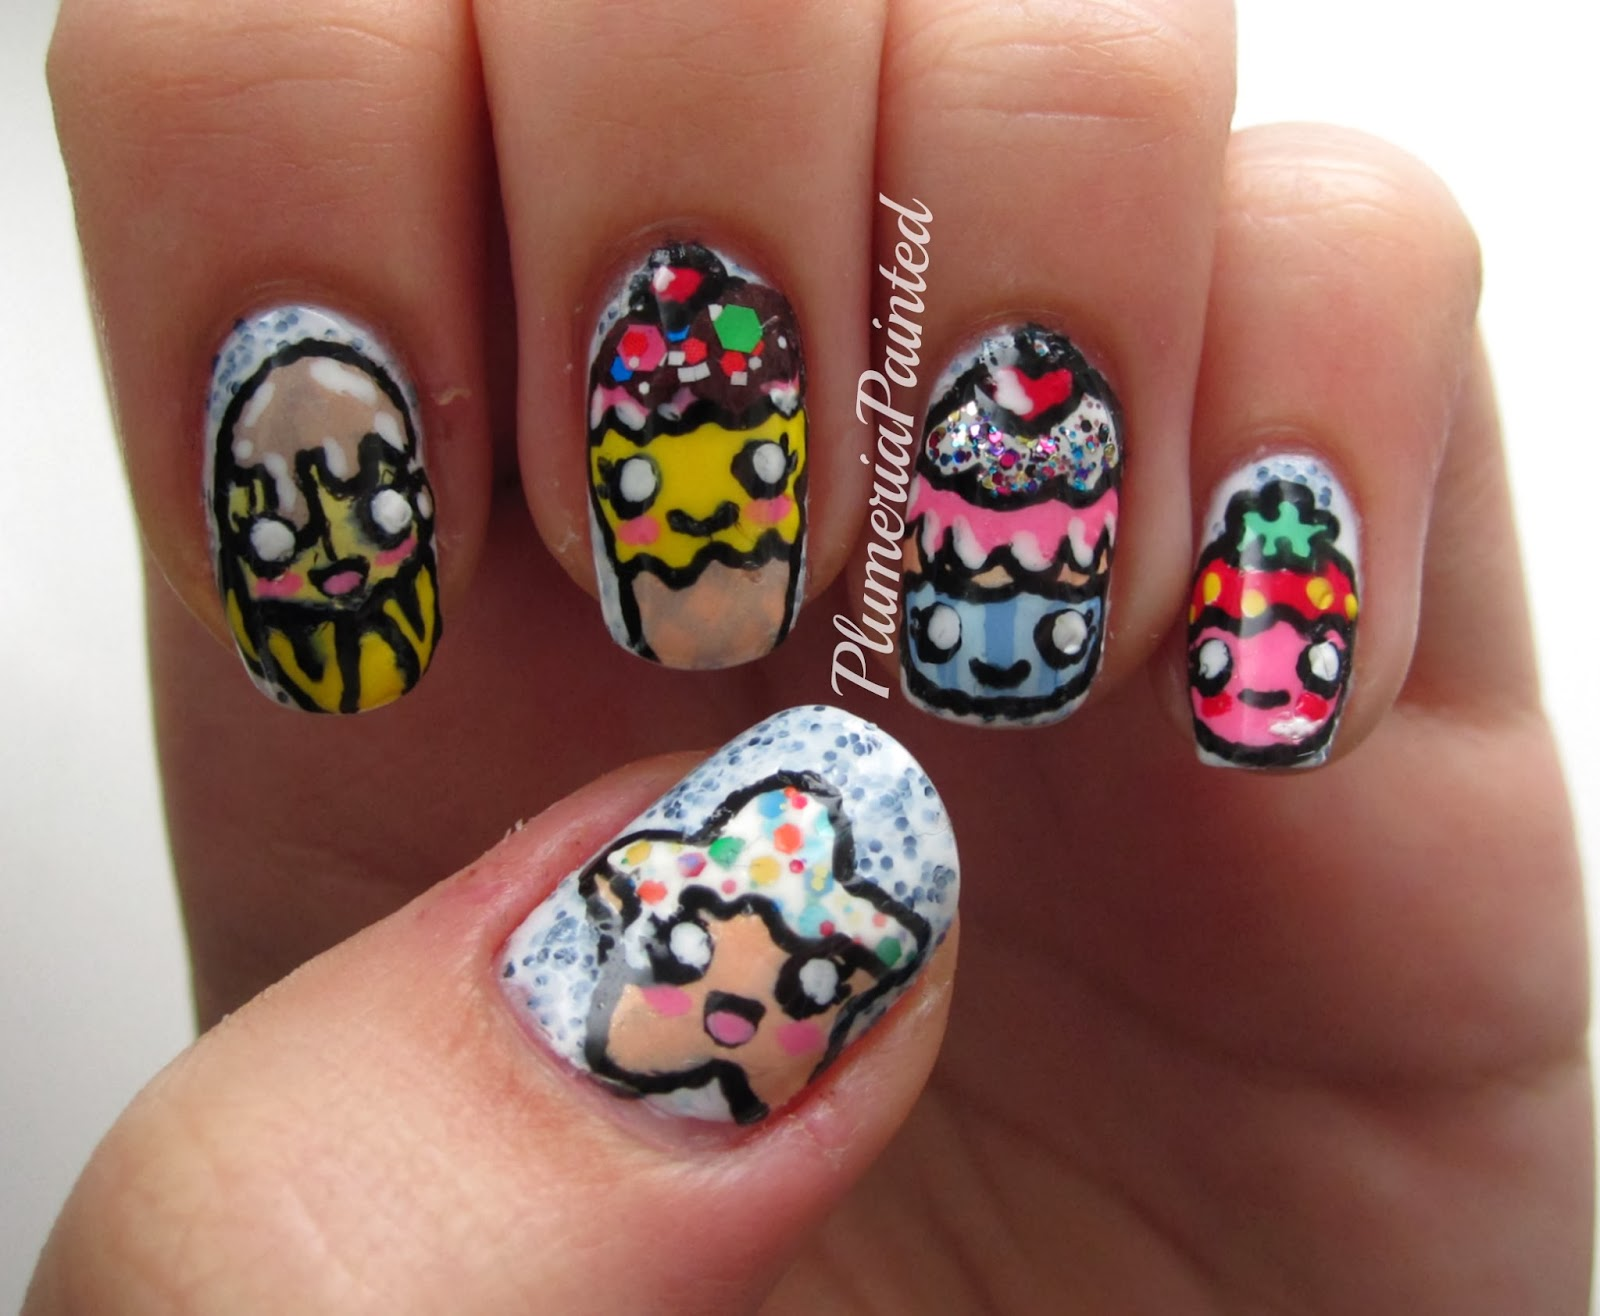 Plumeriapainted ultimate cute food nail art i saw this picture in google images and i did my version and thought id go all crazy with the shiny parts but i didnt but complexity is not for me prinsesfo Gallery